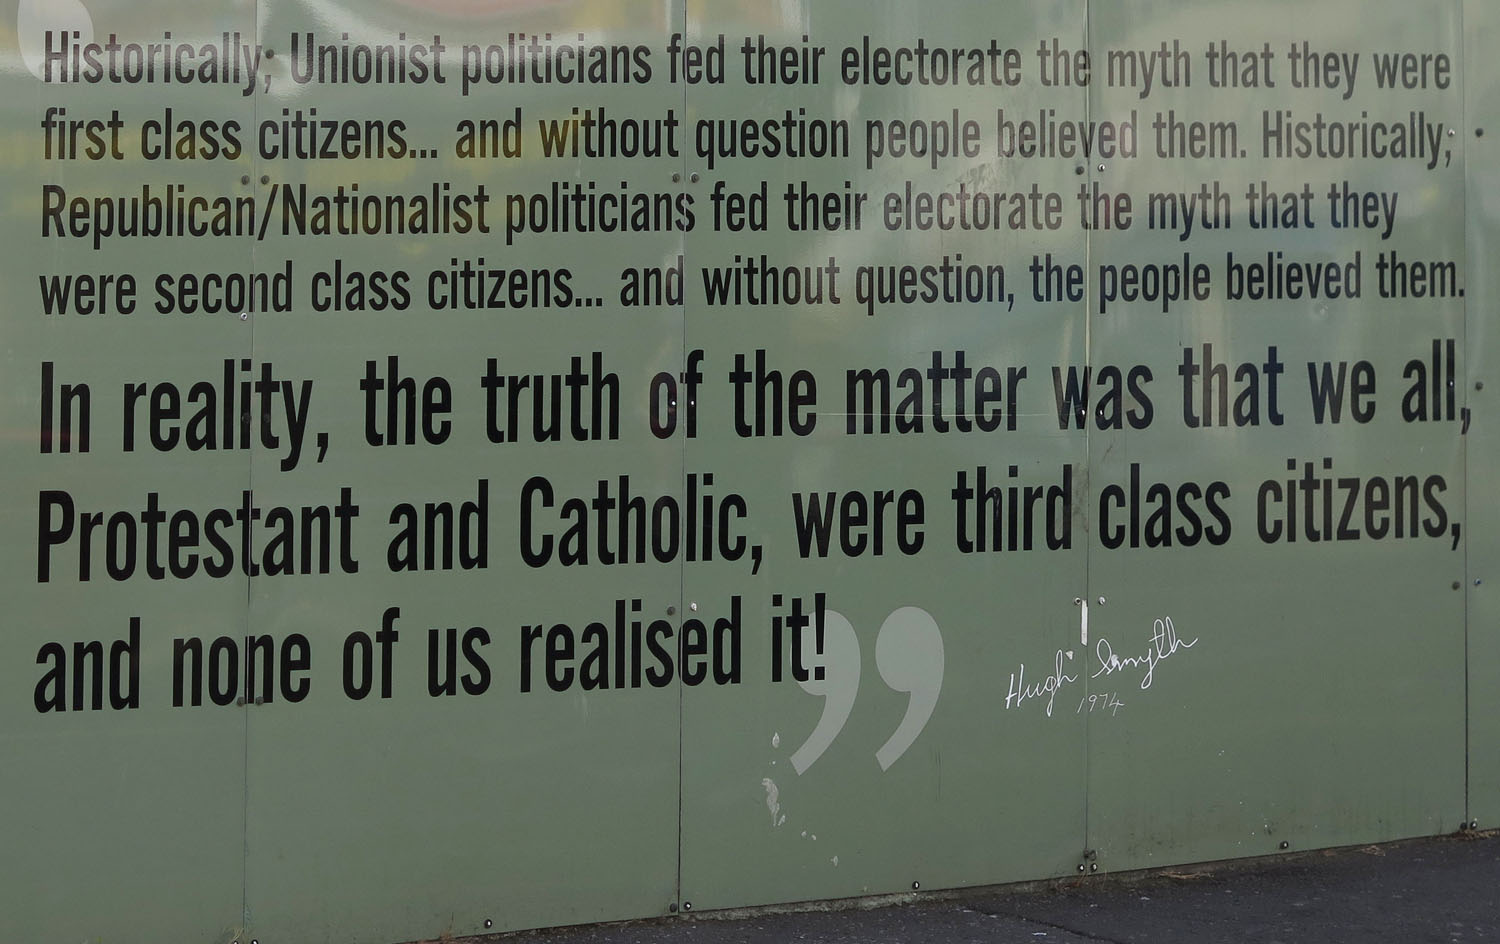 Northern-Ireland-Belfast-The-Troubles-Hugh-Smyth-Quote-1974